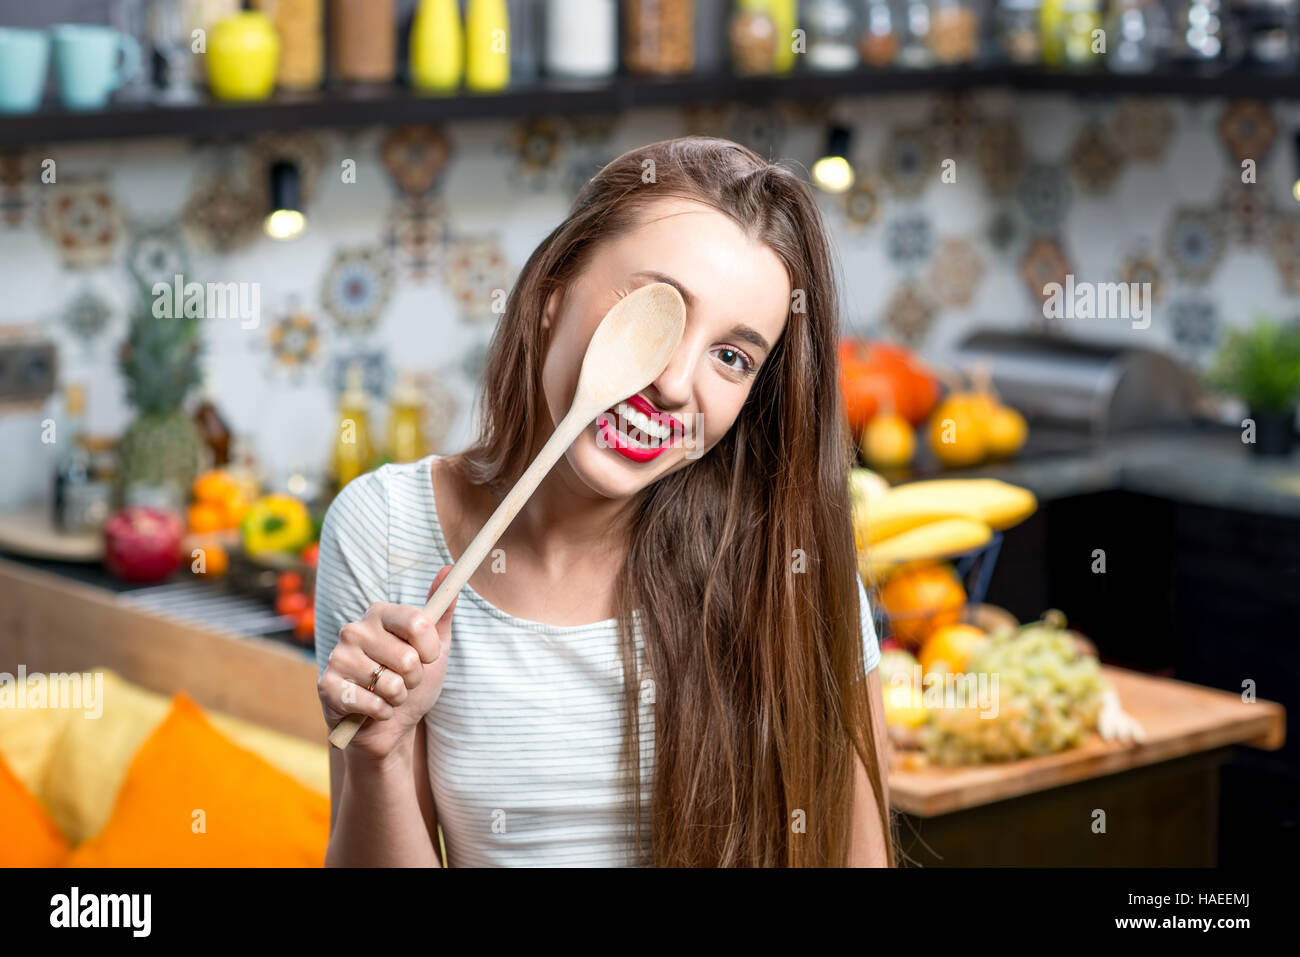 Woman in the kitchen - Stock Image